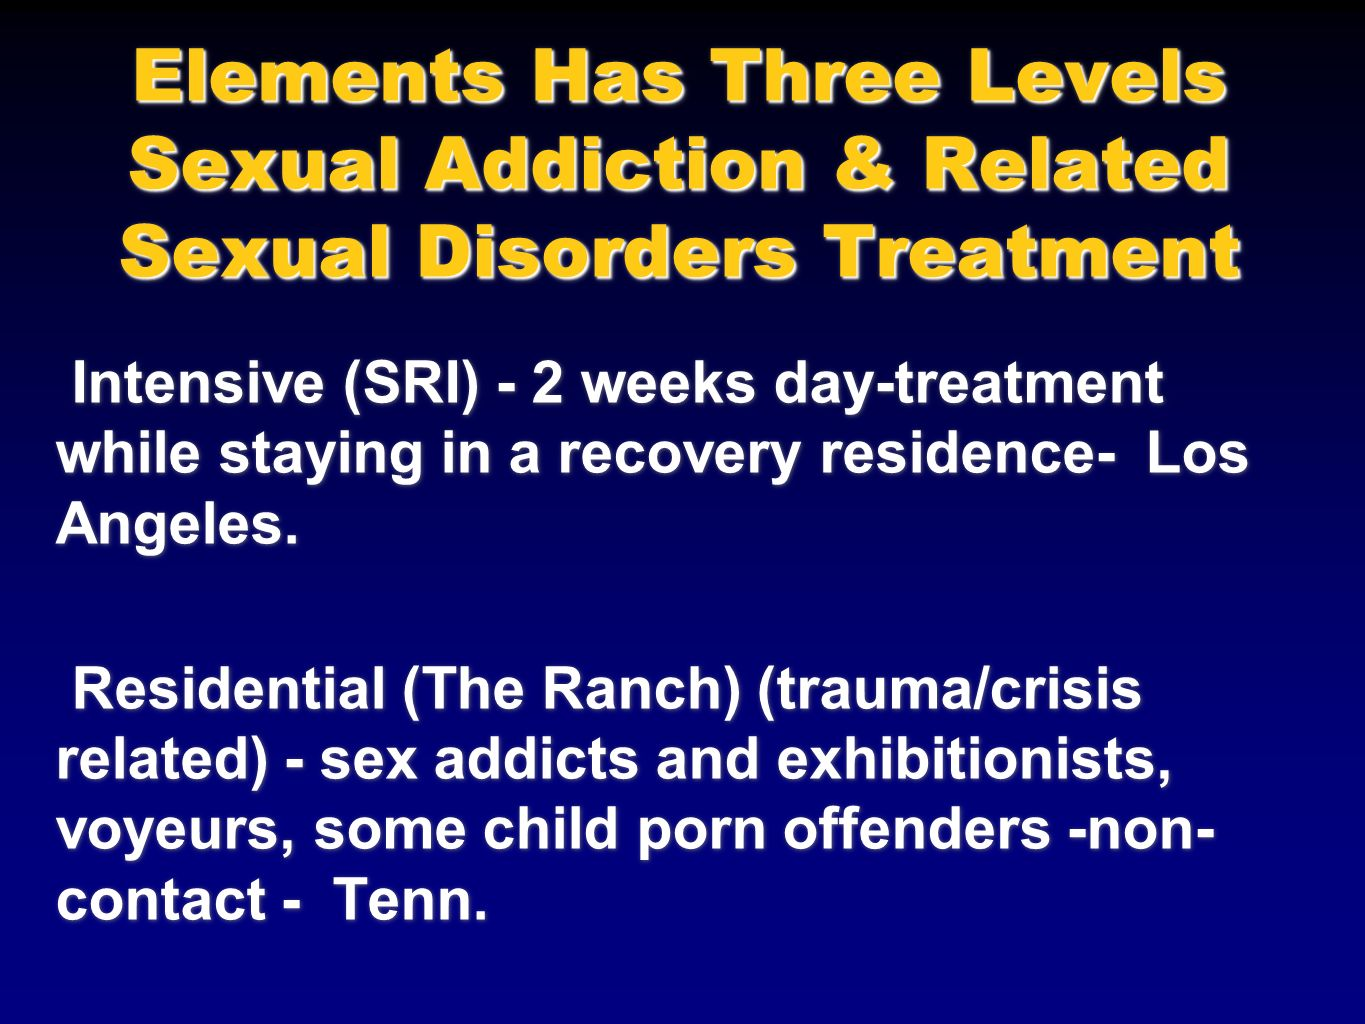 Elements Has Three Levels Sexual Addiction & Related Sexual Disorders Treatment